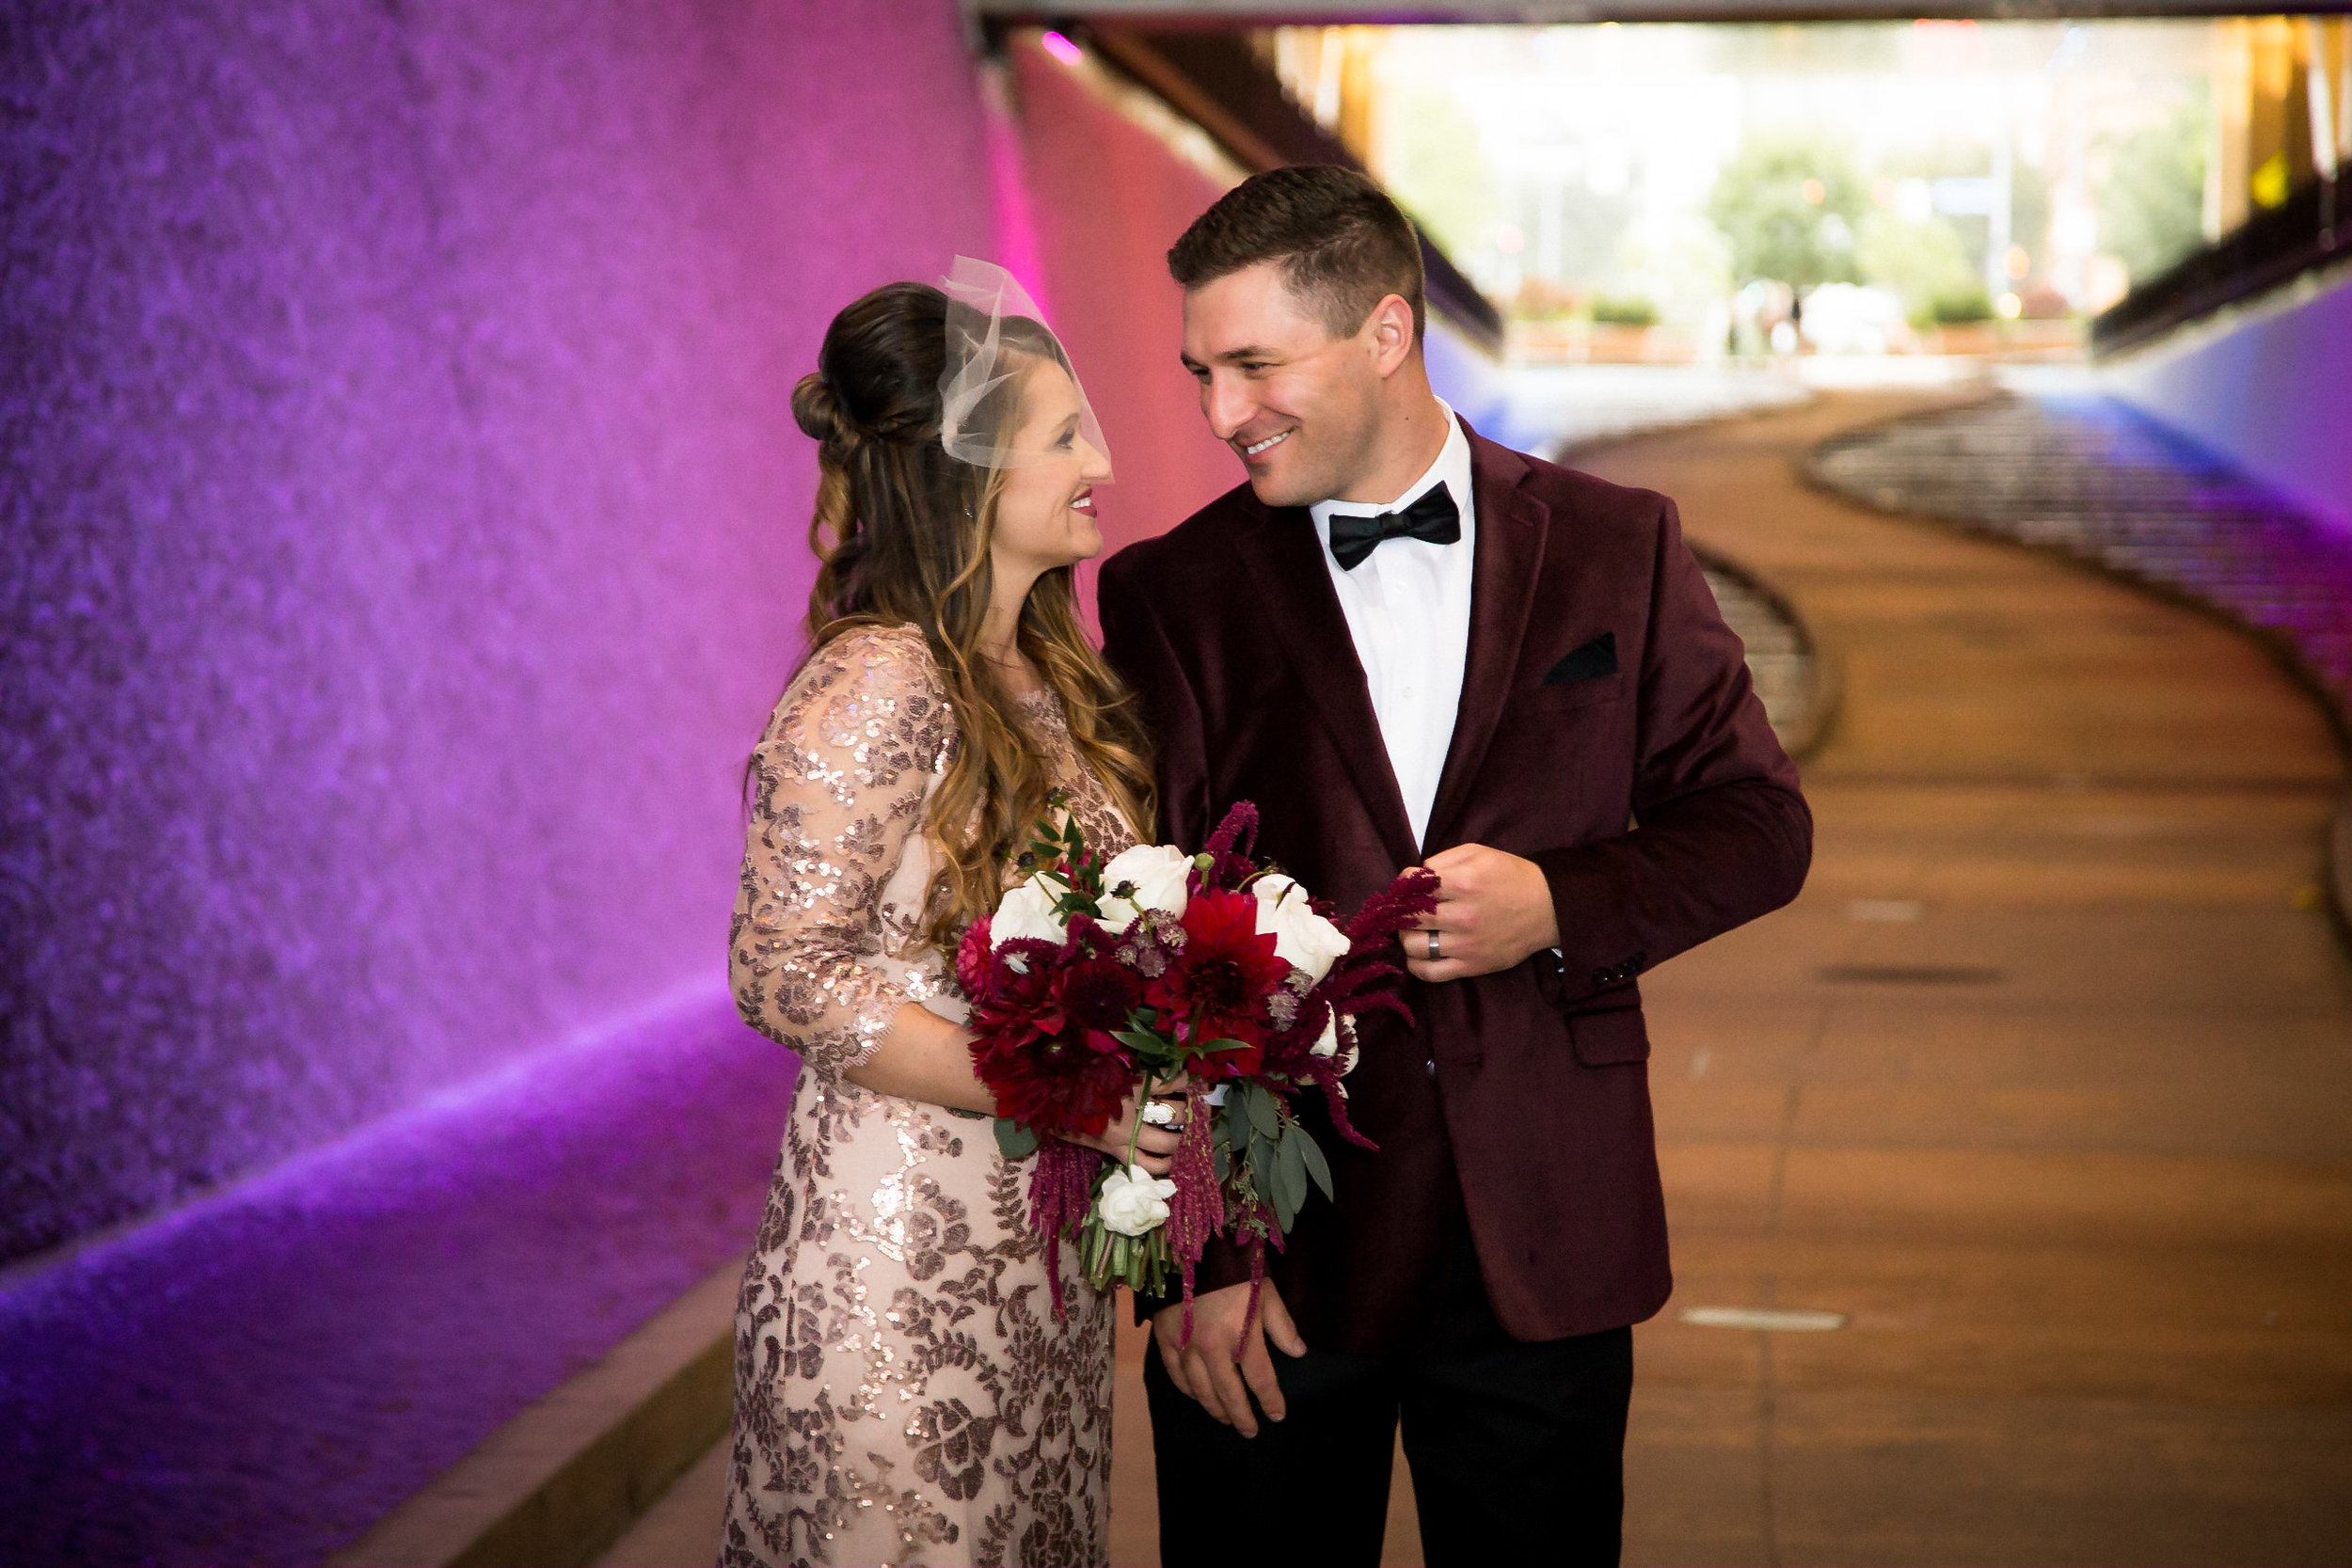 Convention Center Wedding Engagement Picture Locations-1.jpg